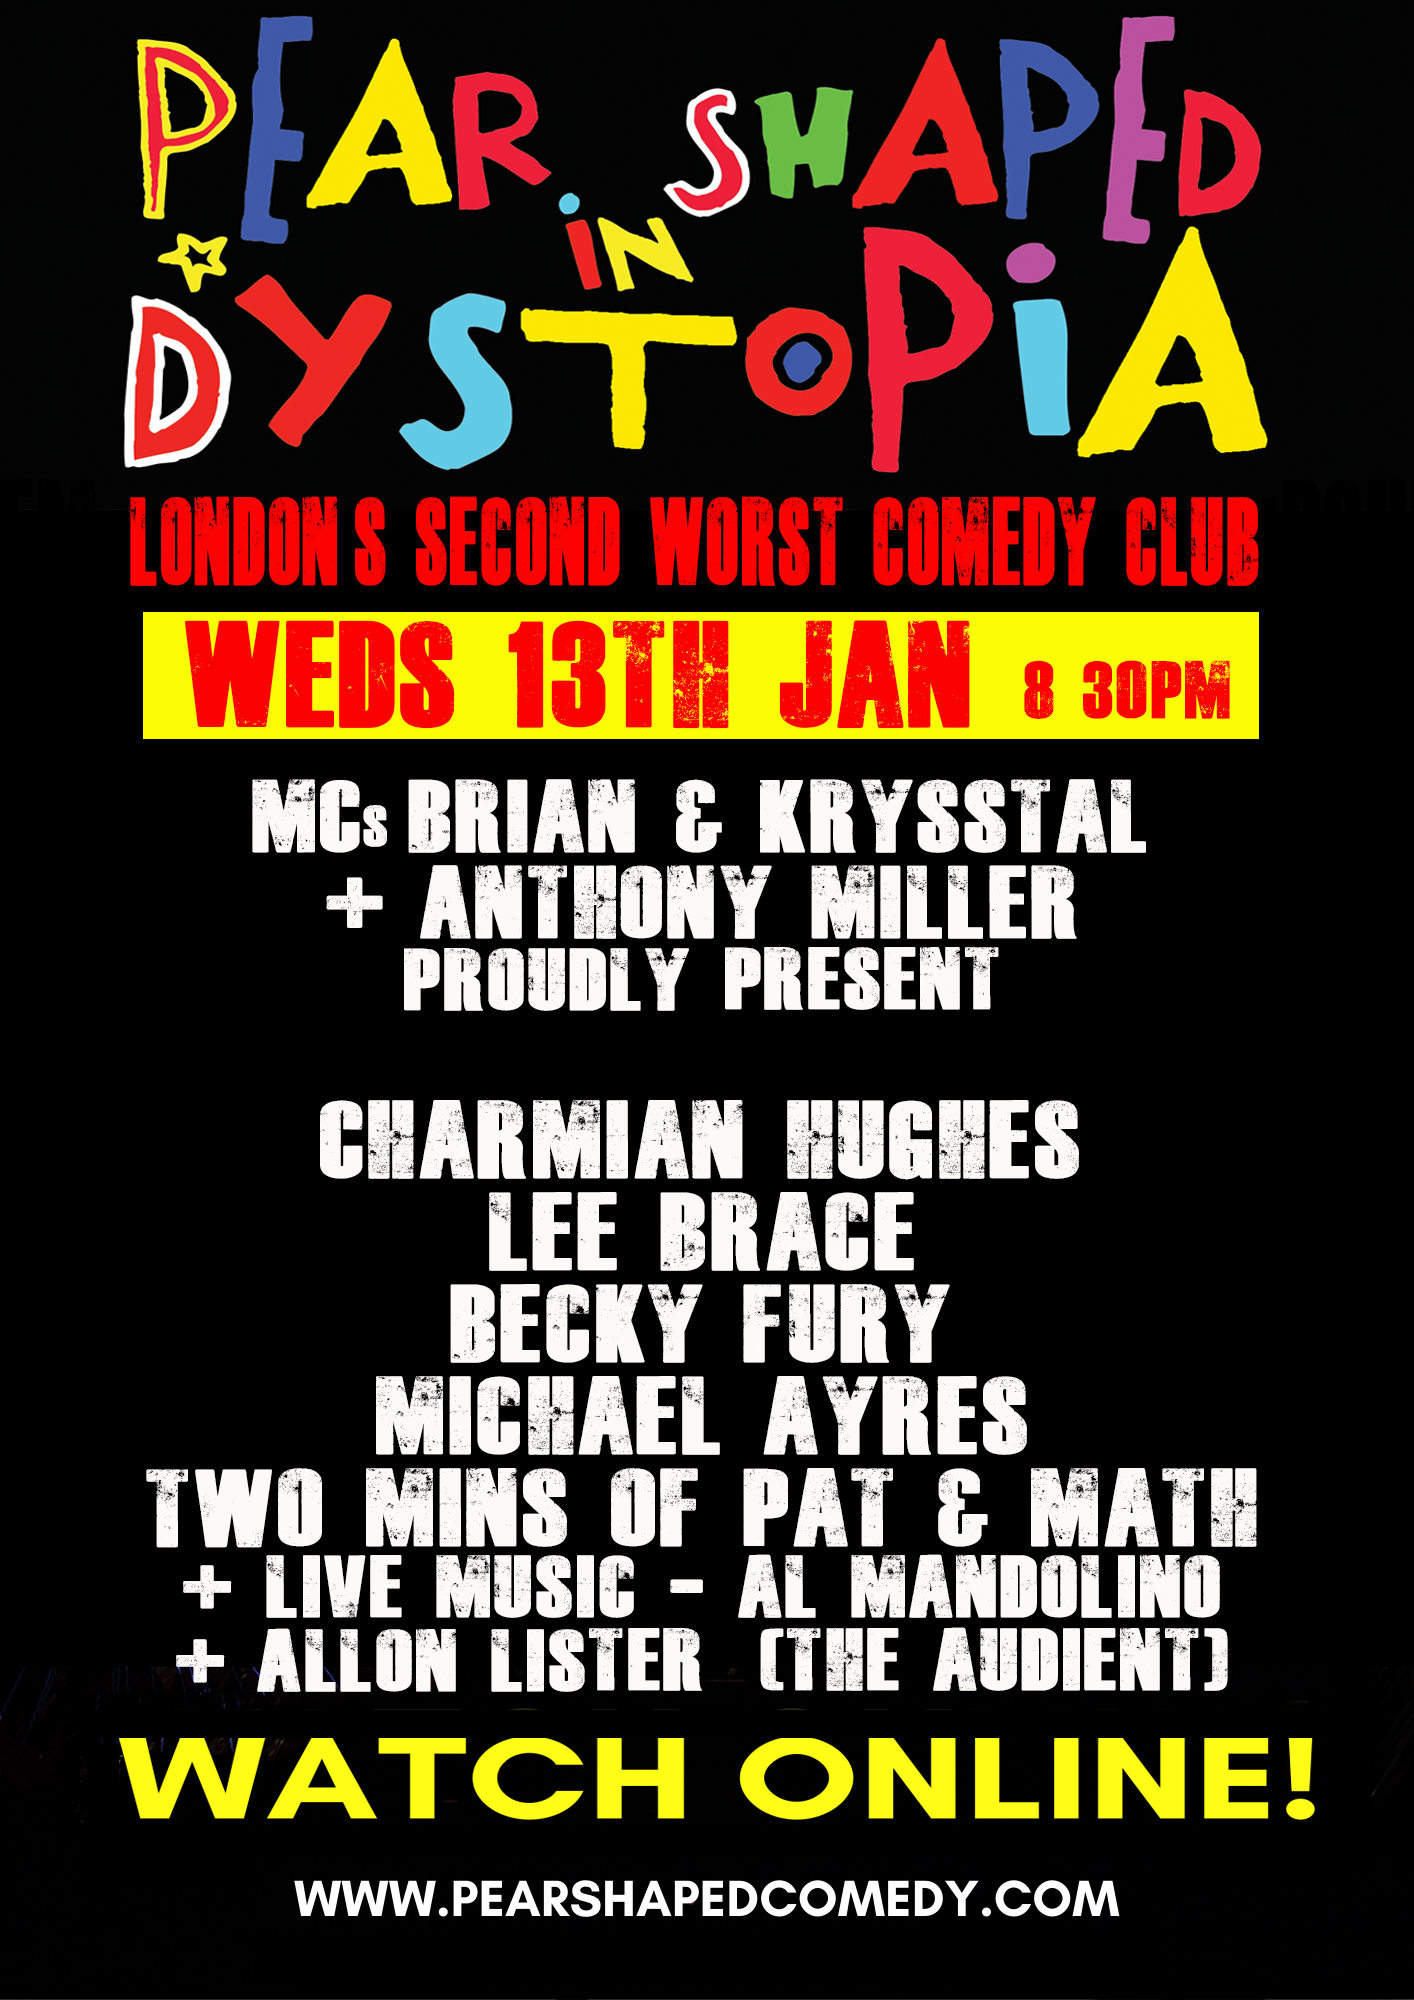 Pear Shaped in Dystopia Flyer 2